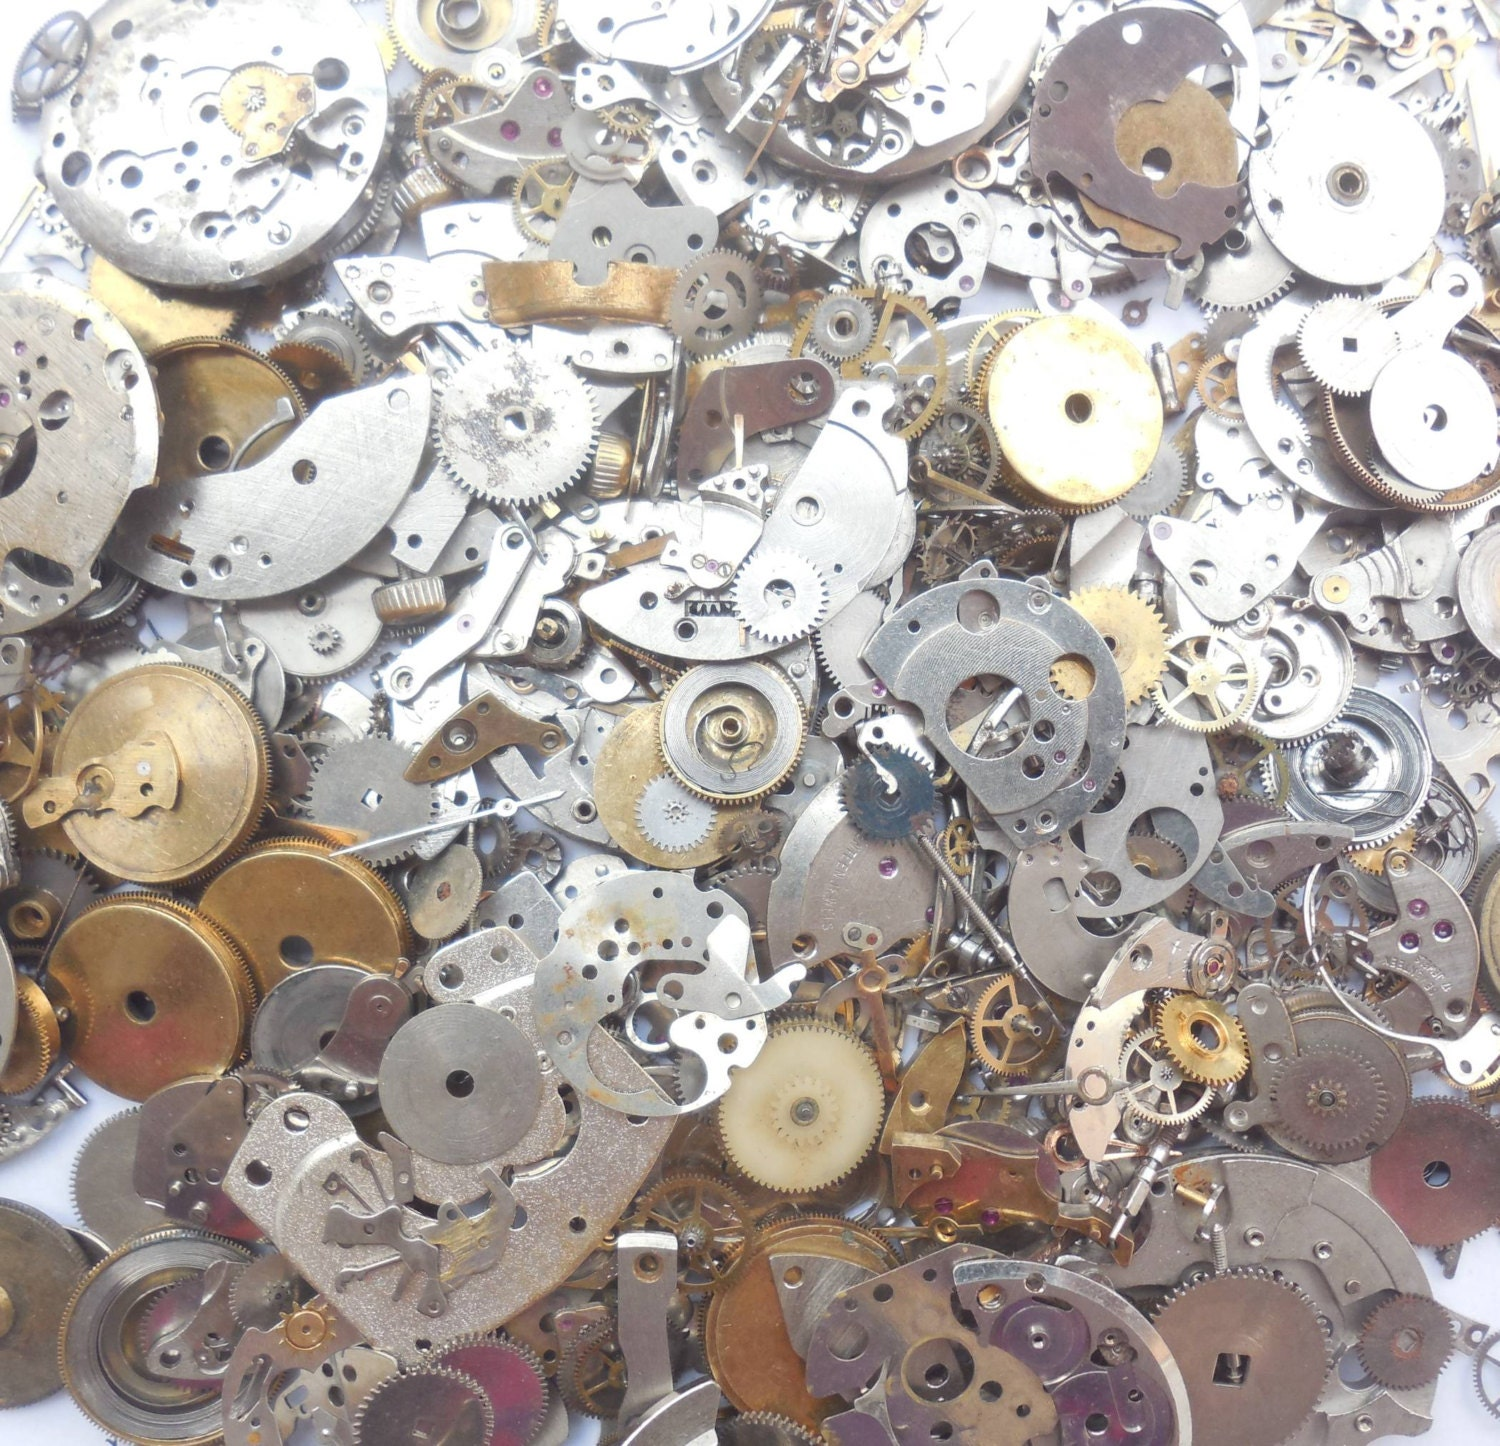 Ring In The Steampunk Decor To Pimp Up Your Home: 150gram Vintage Steampunk Watch Parts Wheels Parts Other